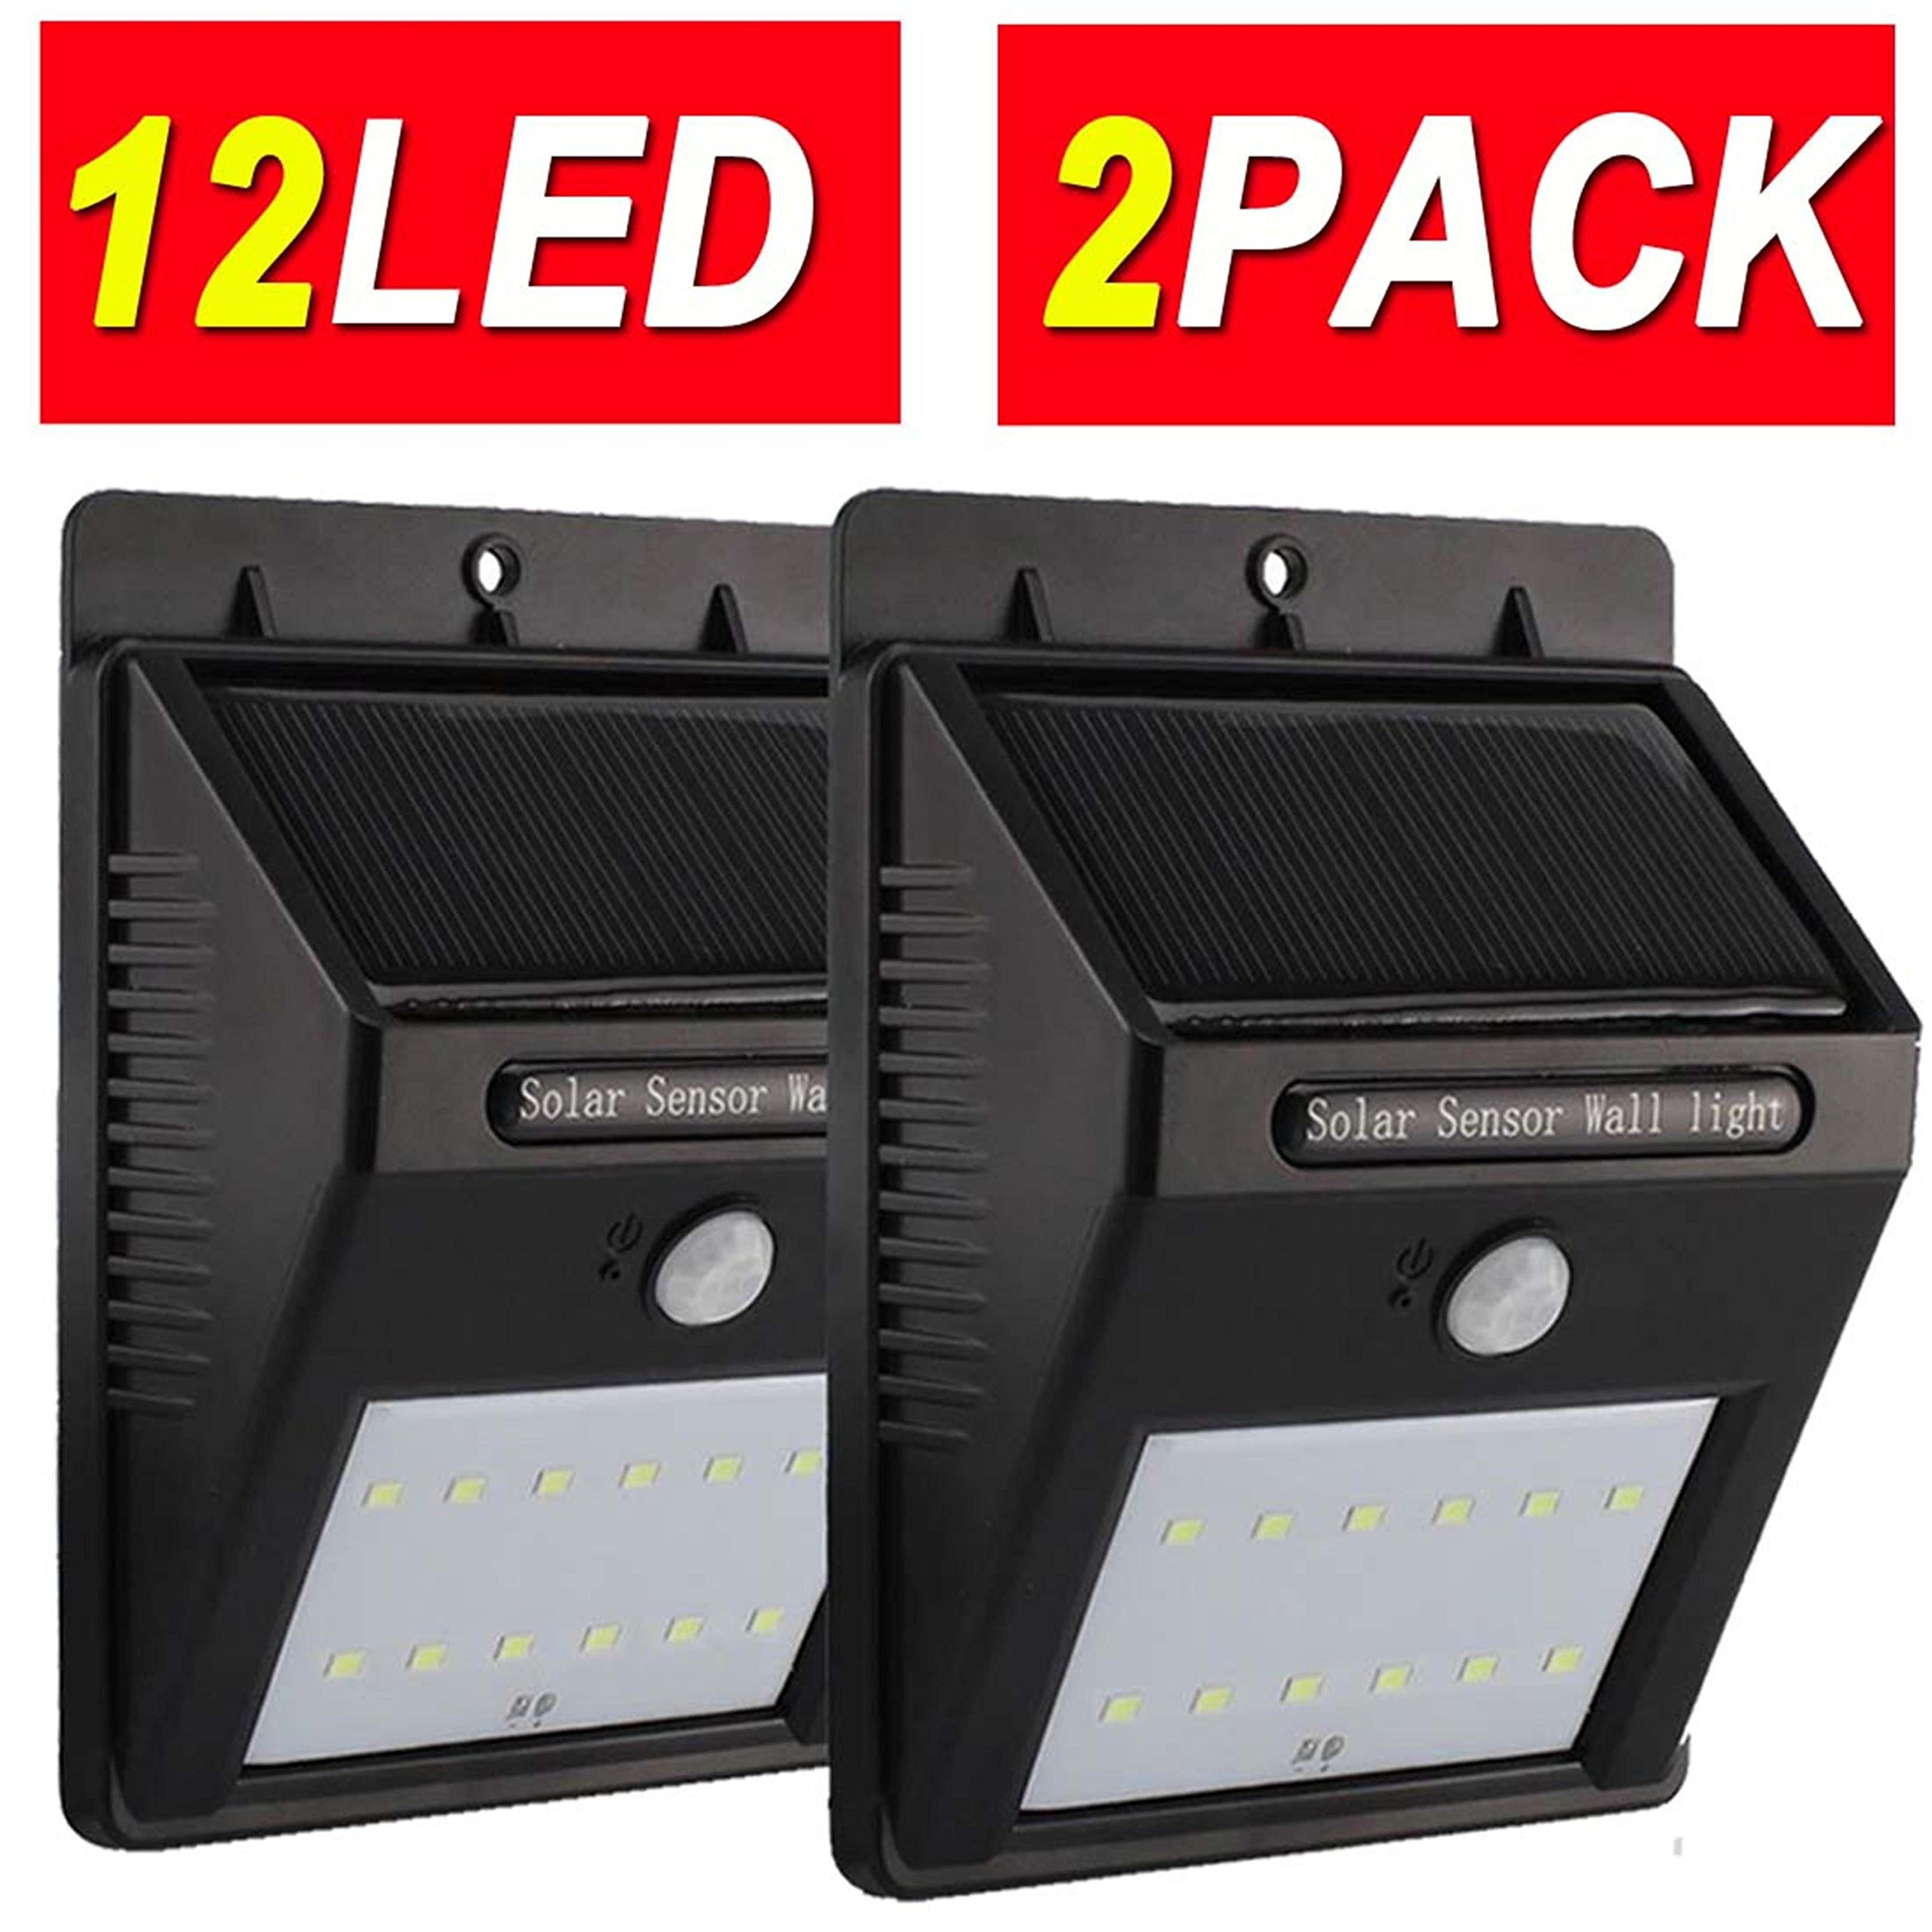 12LED 2PACK Promotion Upgraded Super Bright Sogrand Solar Motion Light Weatherproof Outdoor Solar Light Wireless Solar Motion Security Light Solar Motion Activated Security Light